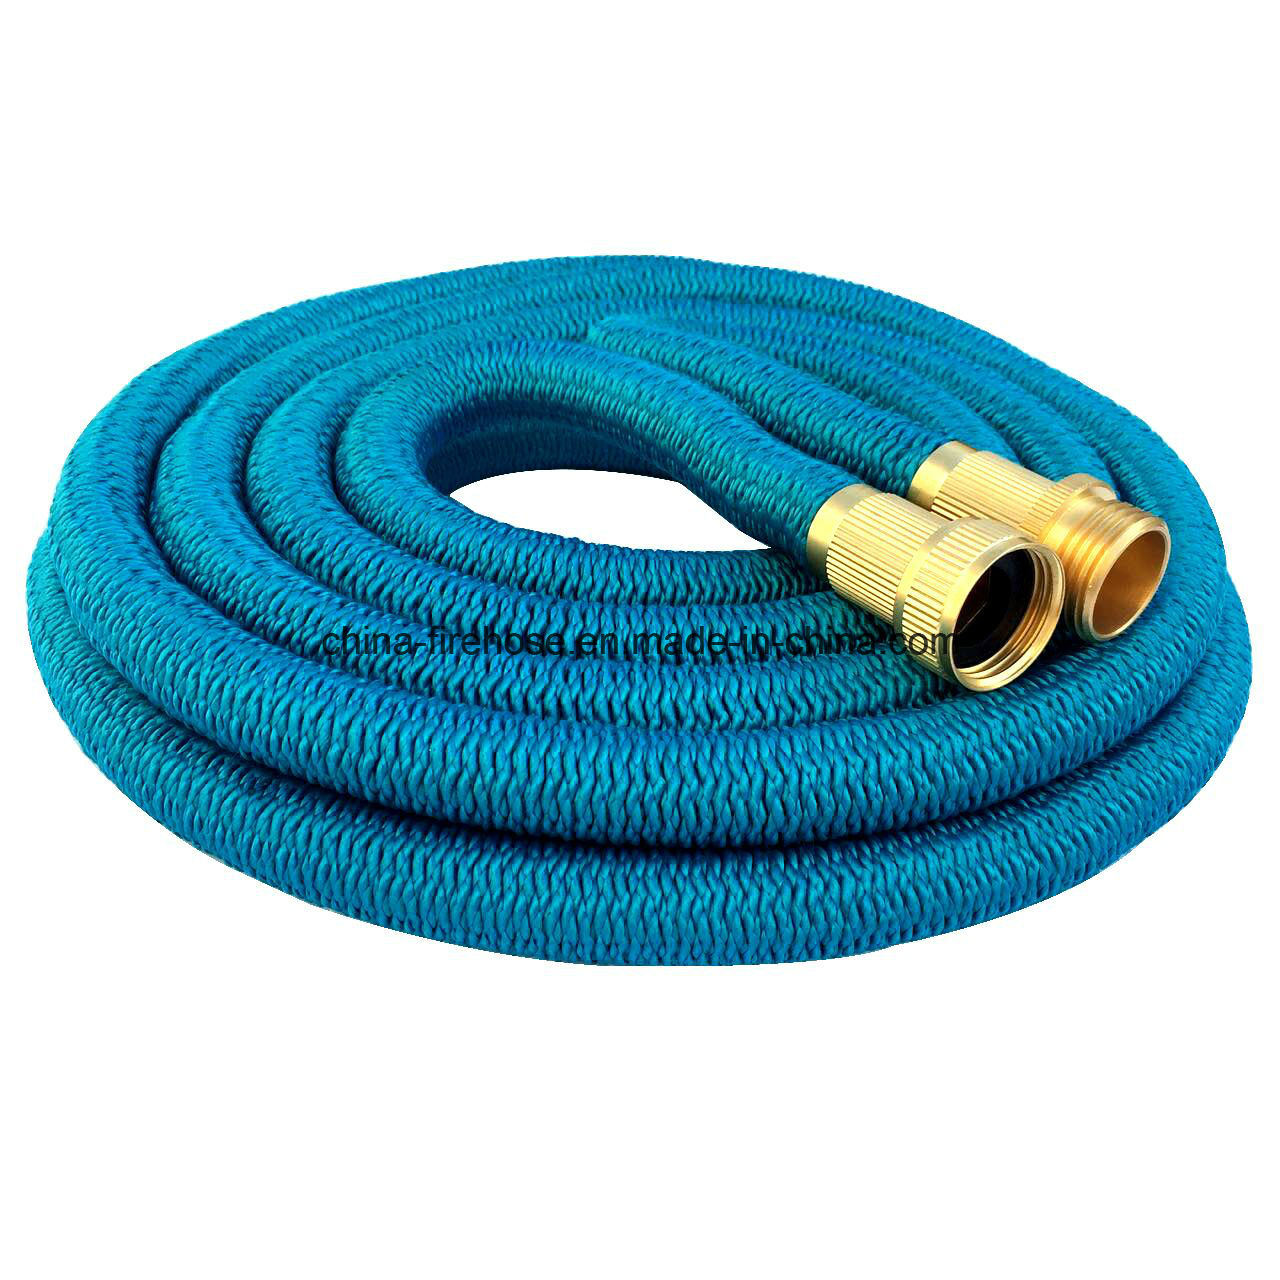 2017 Satisfaction Guarantee Super Strong Expandable Hose, Water Hose, Amazon Garden Hose